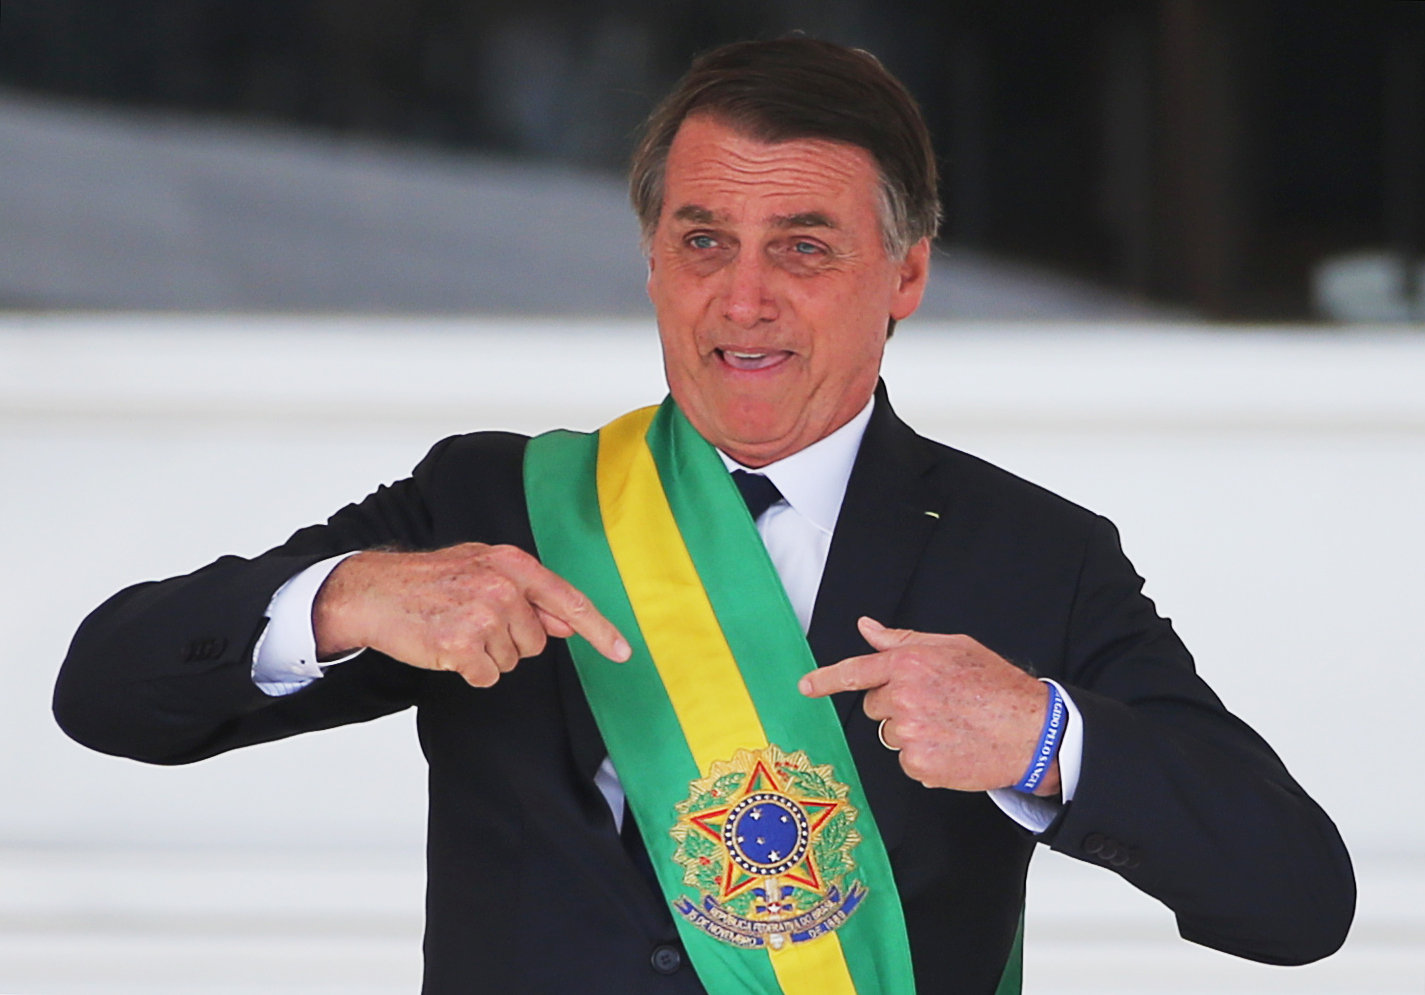 Brazil's new President Jair Bolsonaro gestures after receiving the presidential sash from outgoing President Michel Temer at the Planalto Palace, in Brasilia, Brazil January 1, 2019. REUTERS/Sergio Moraes